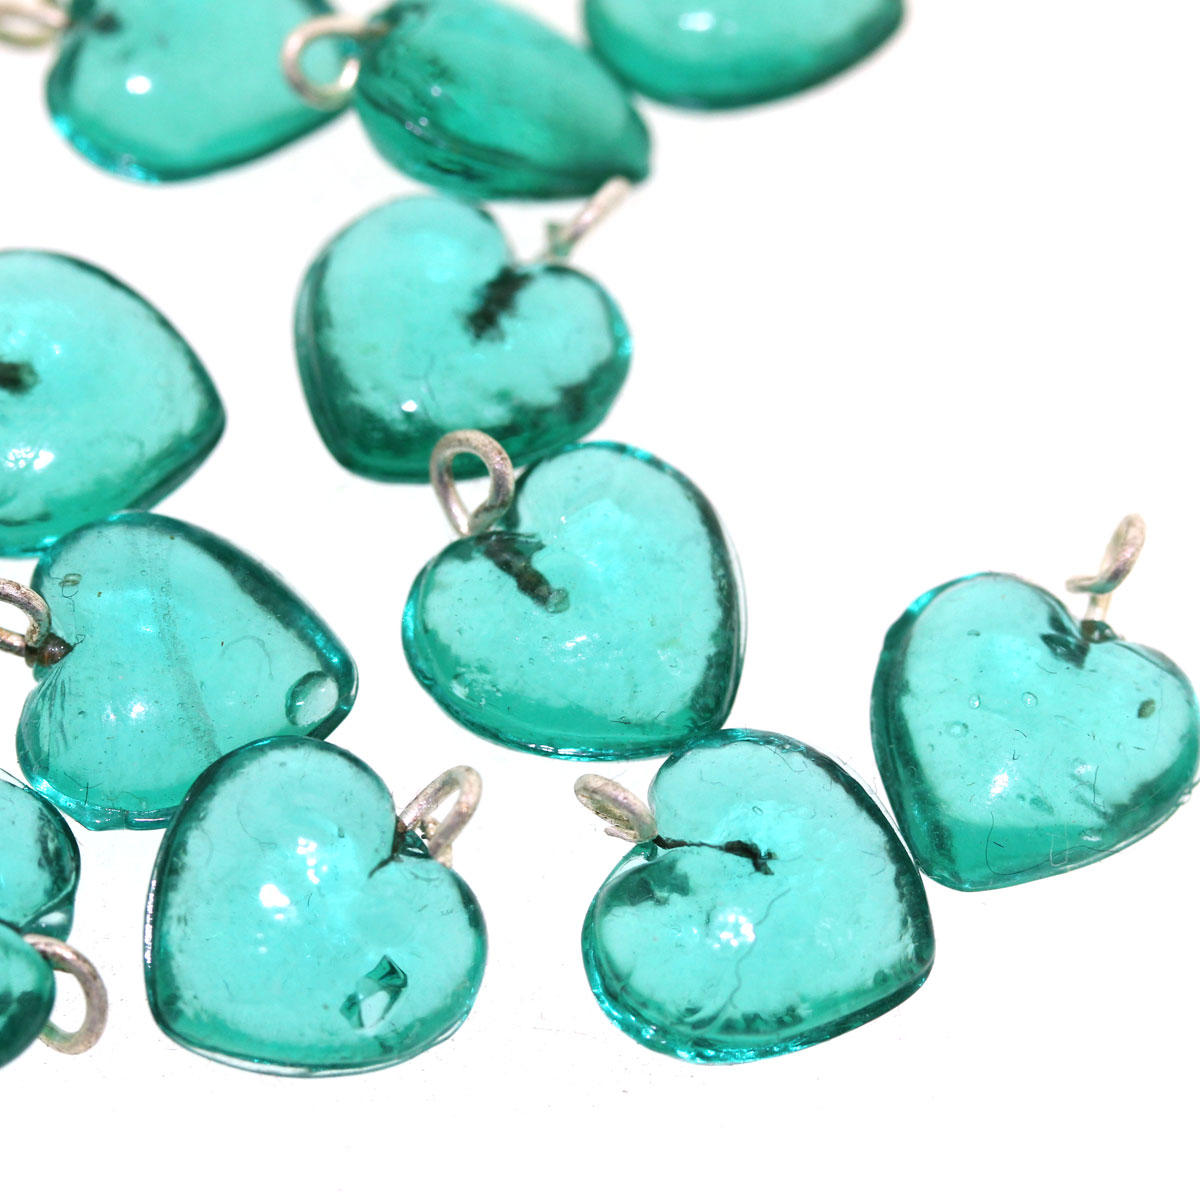 Jade Small Heart Glass Pendant- Code 12/11